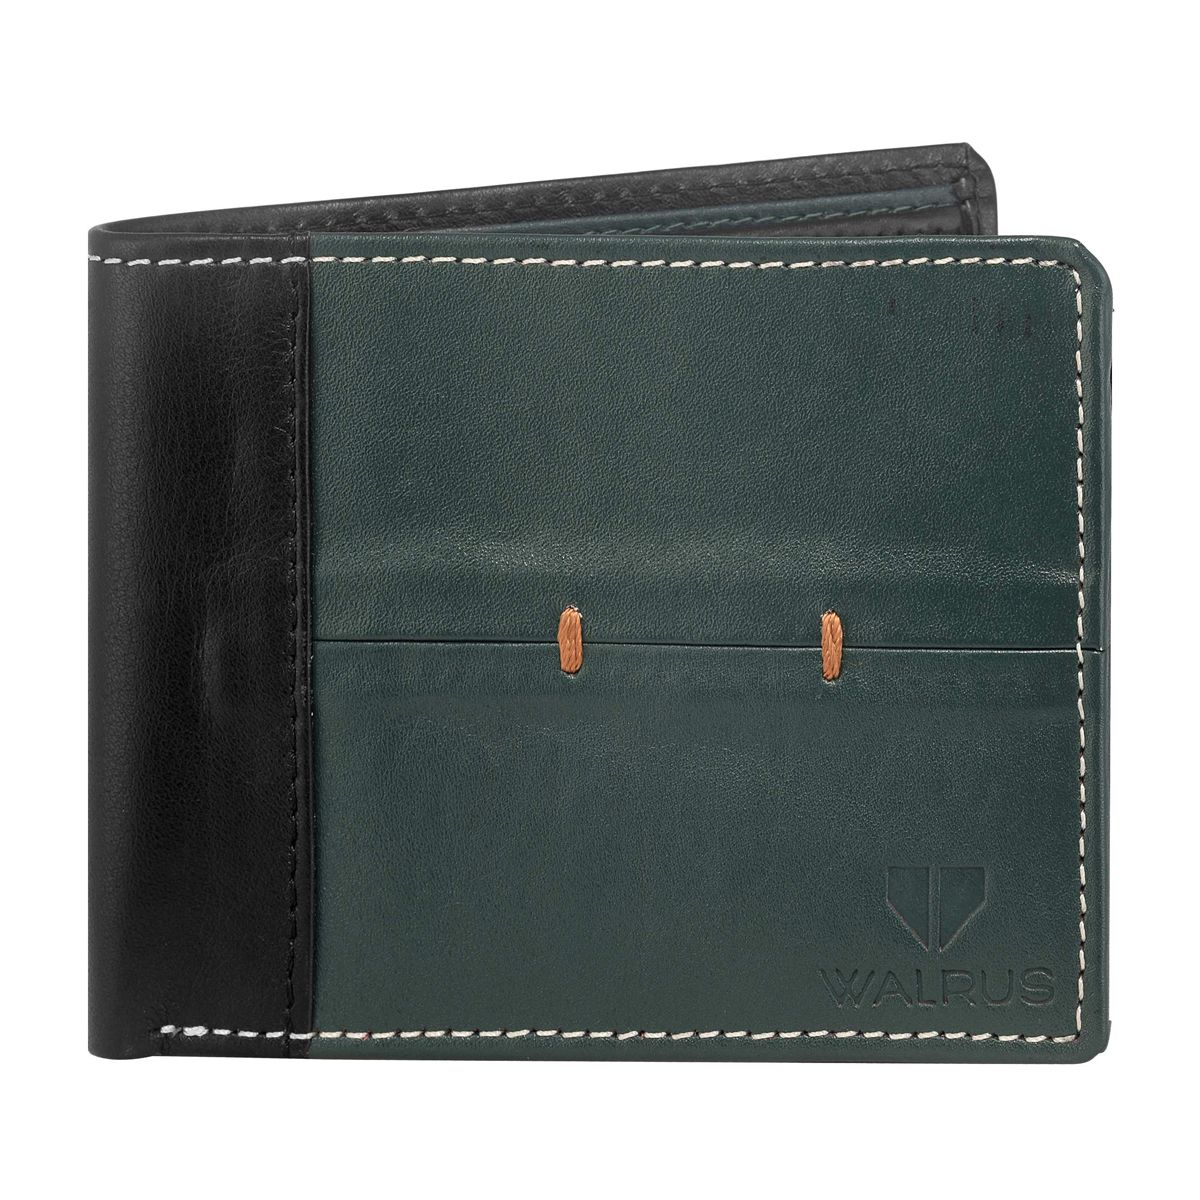 Walrus Marverick Green & Black Color Men Leather Wallet- WW-MVK-0402